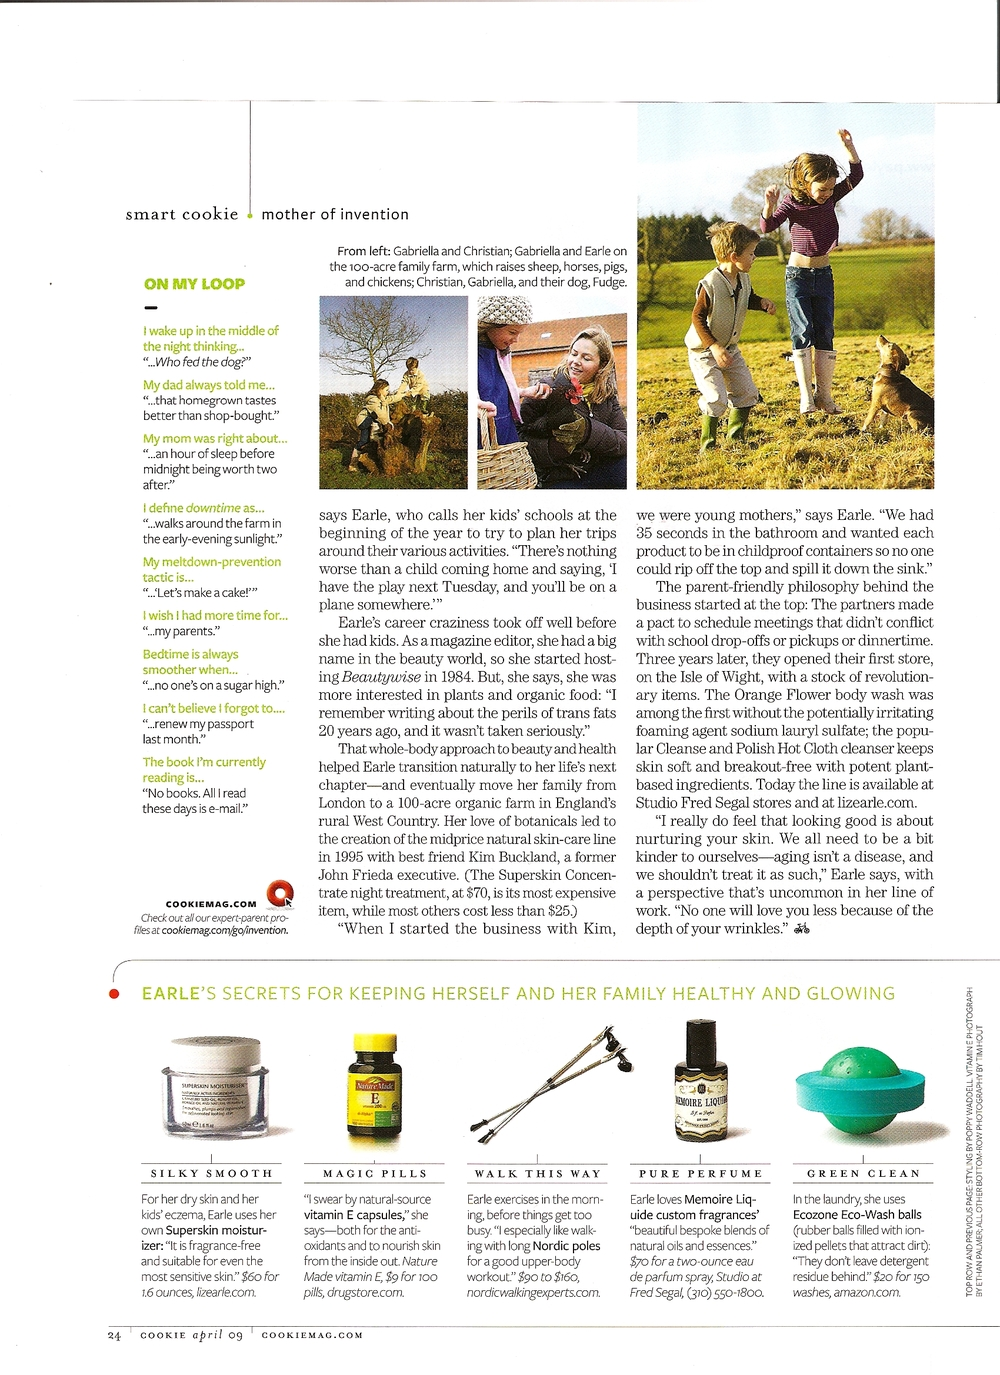 Hunter_Cookie_article_page_2_April_2009.jpg